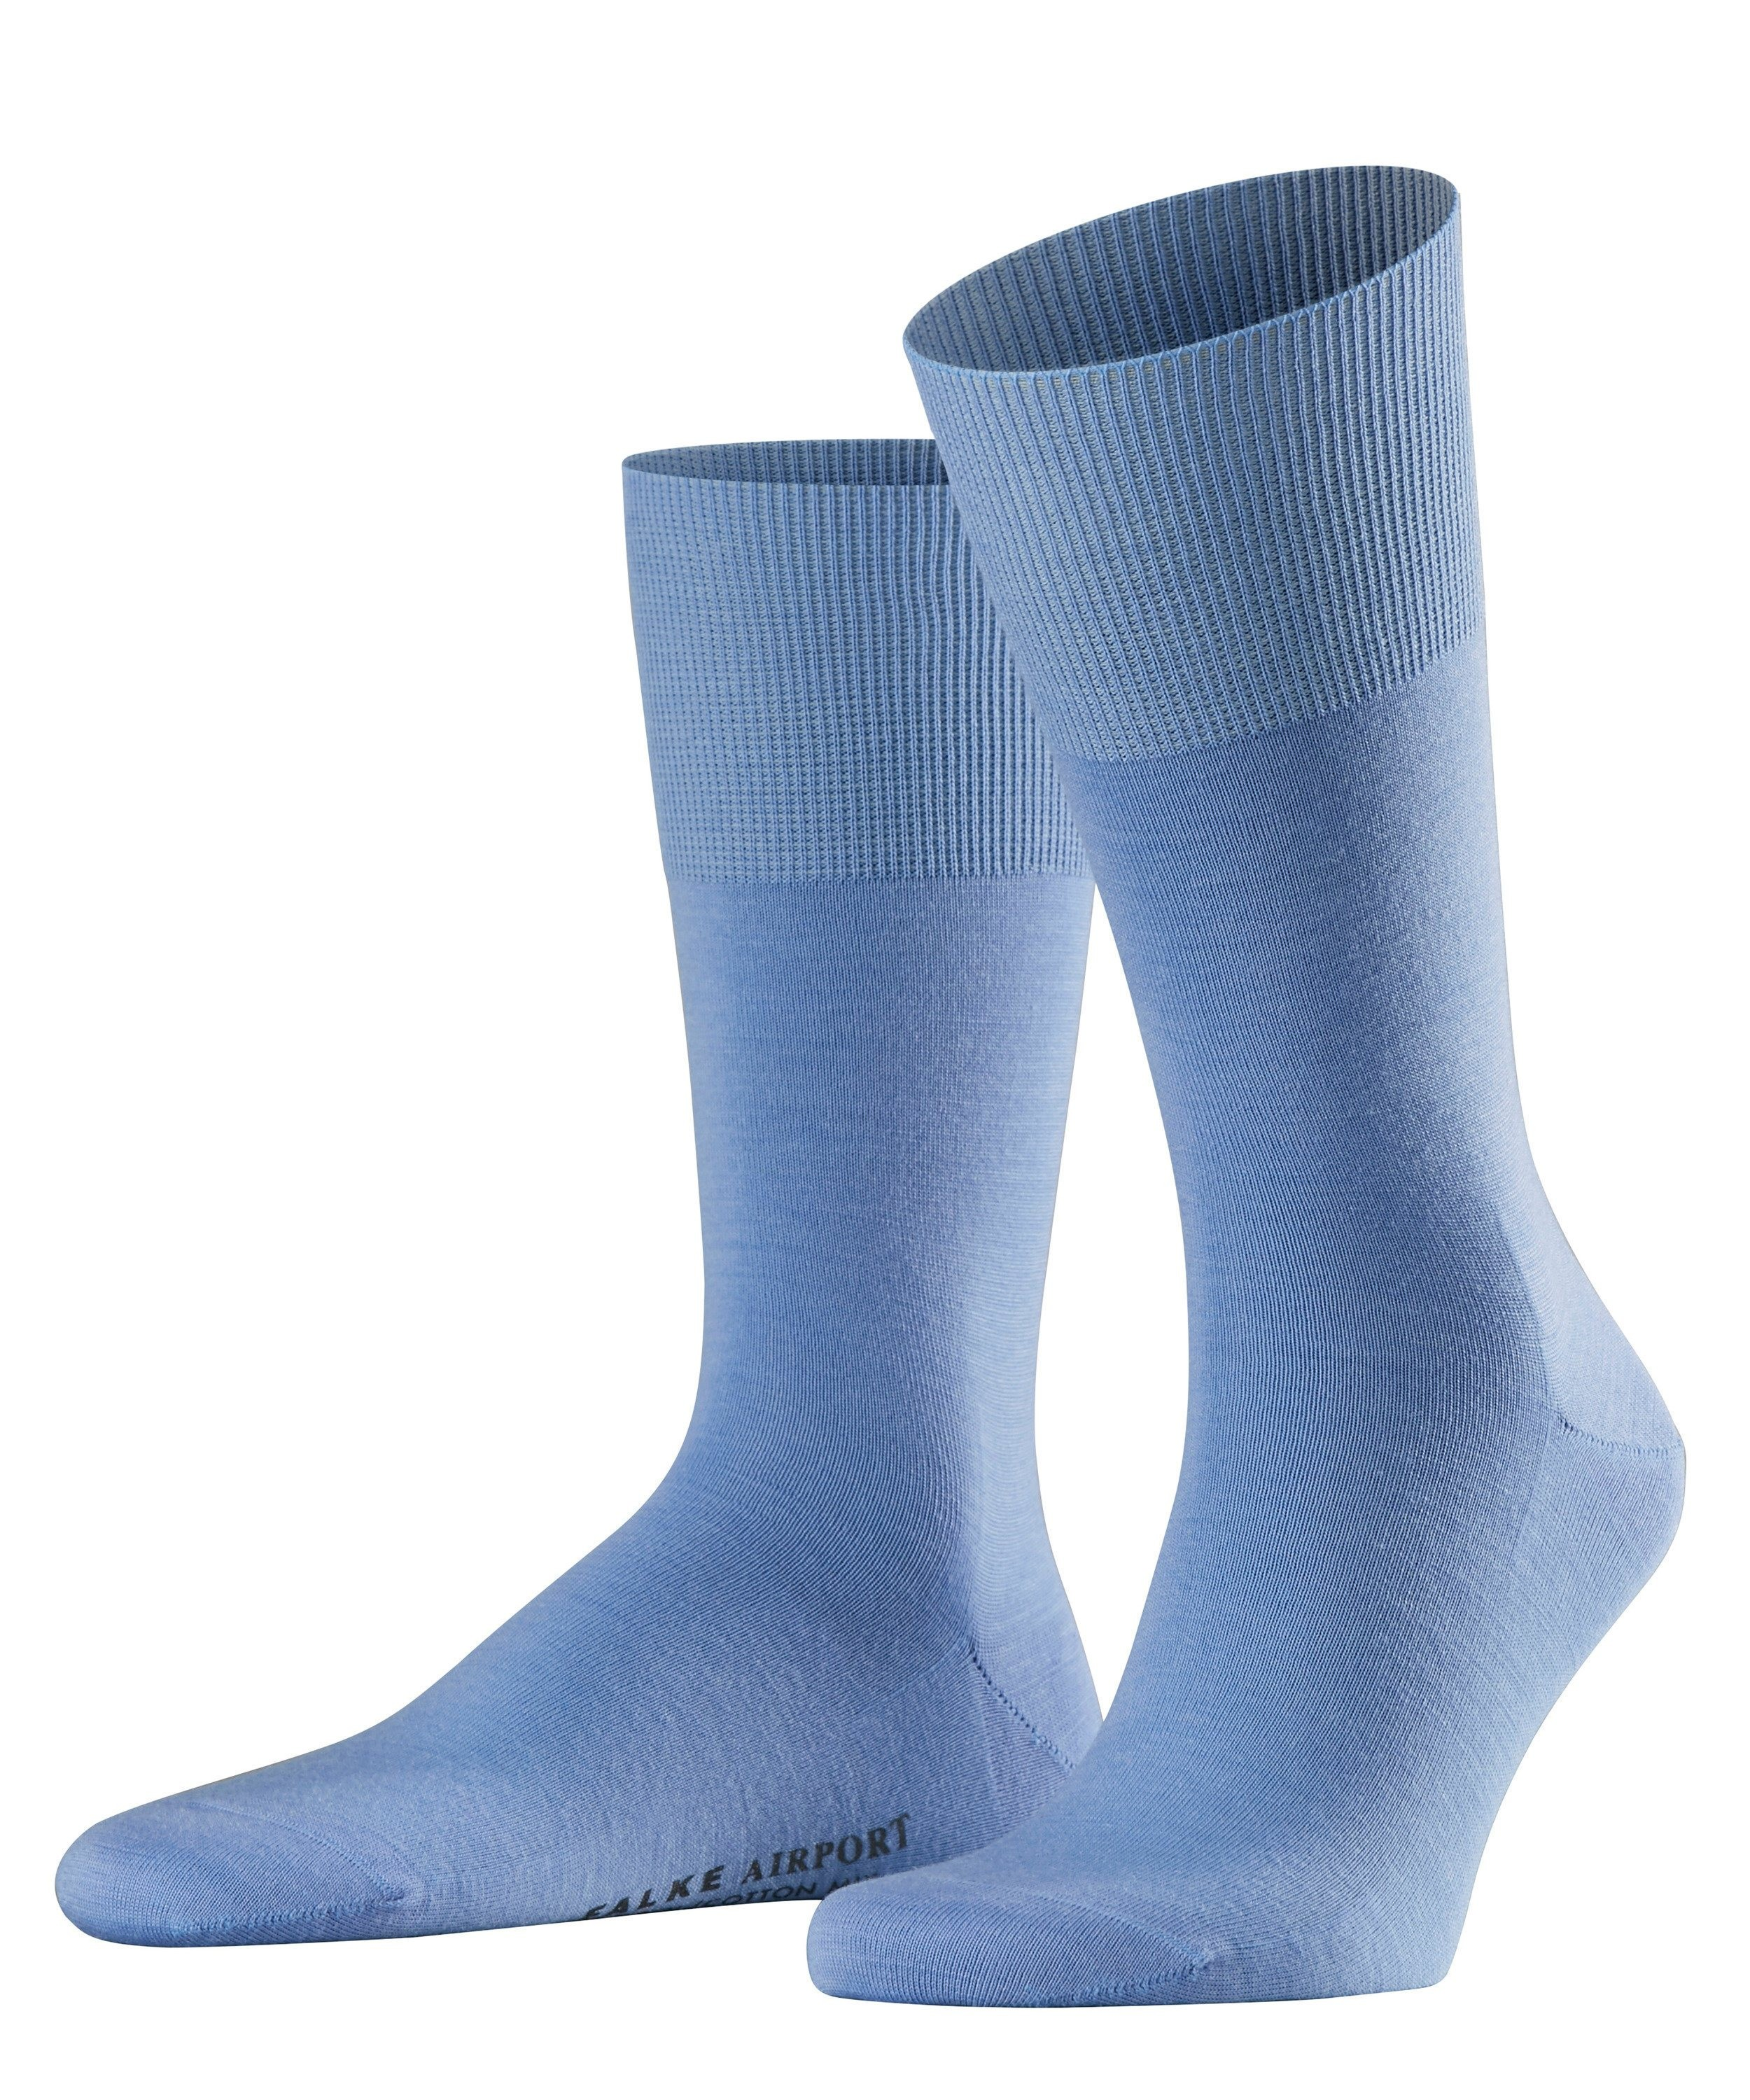 "Chaussette Homme - Laine & Coton - Falke Men ""Airport City"" 14435 - Bleue 6543"